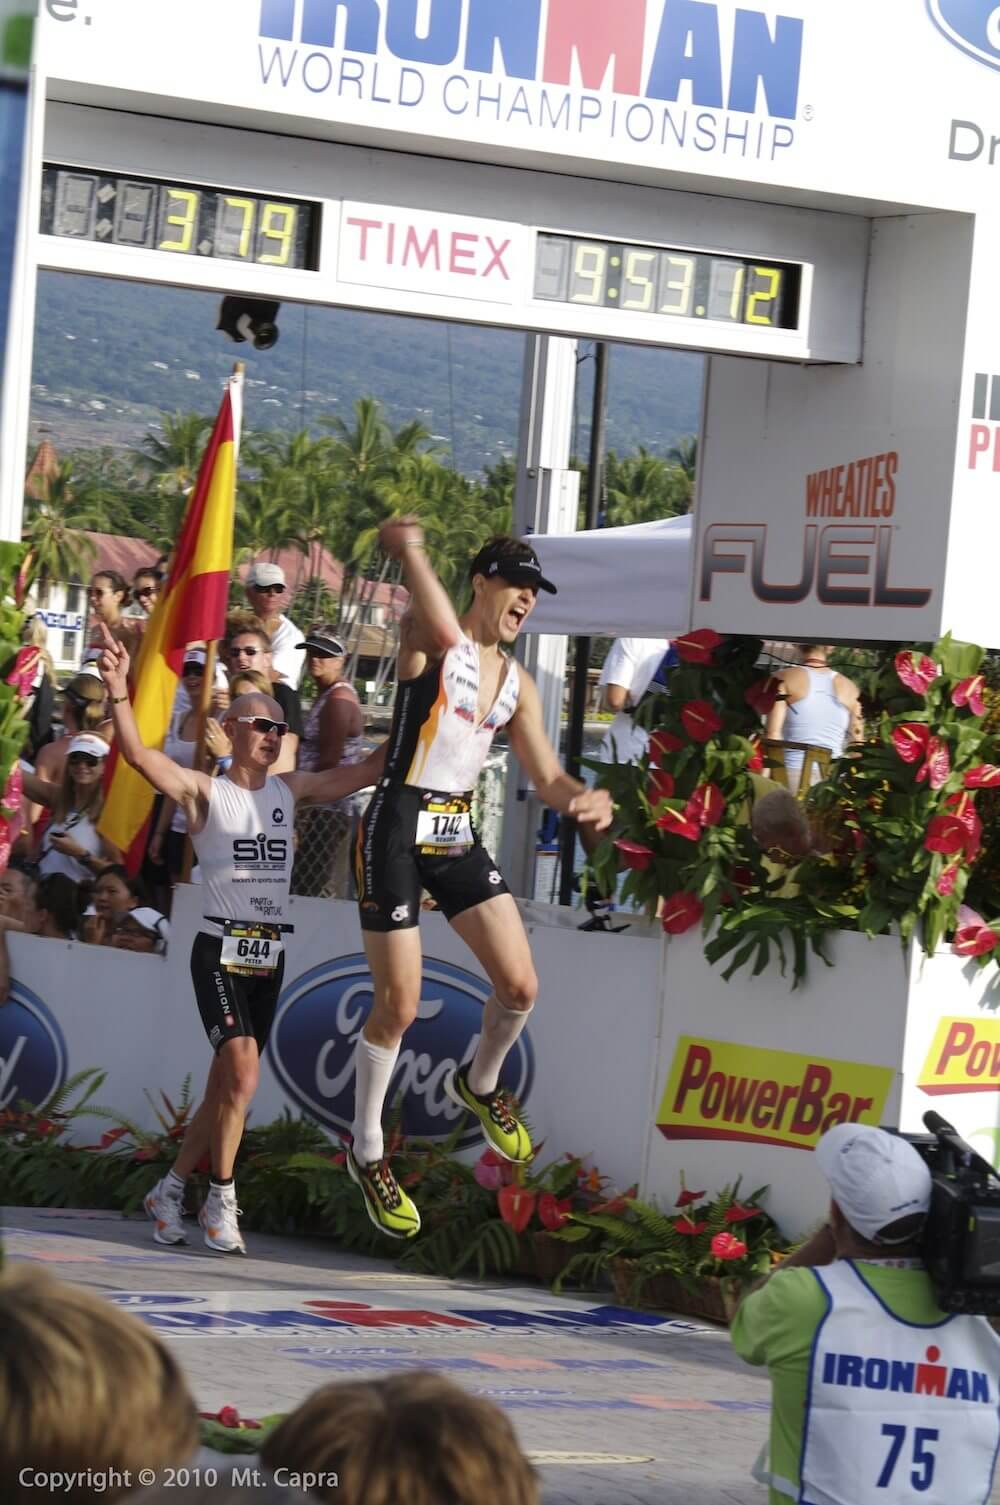 Kona, Hawaii - Ironman World Championship - Finish Line